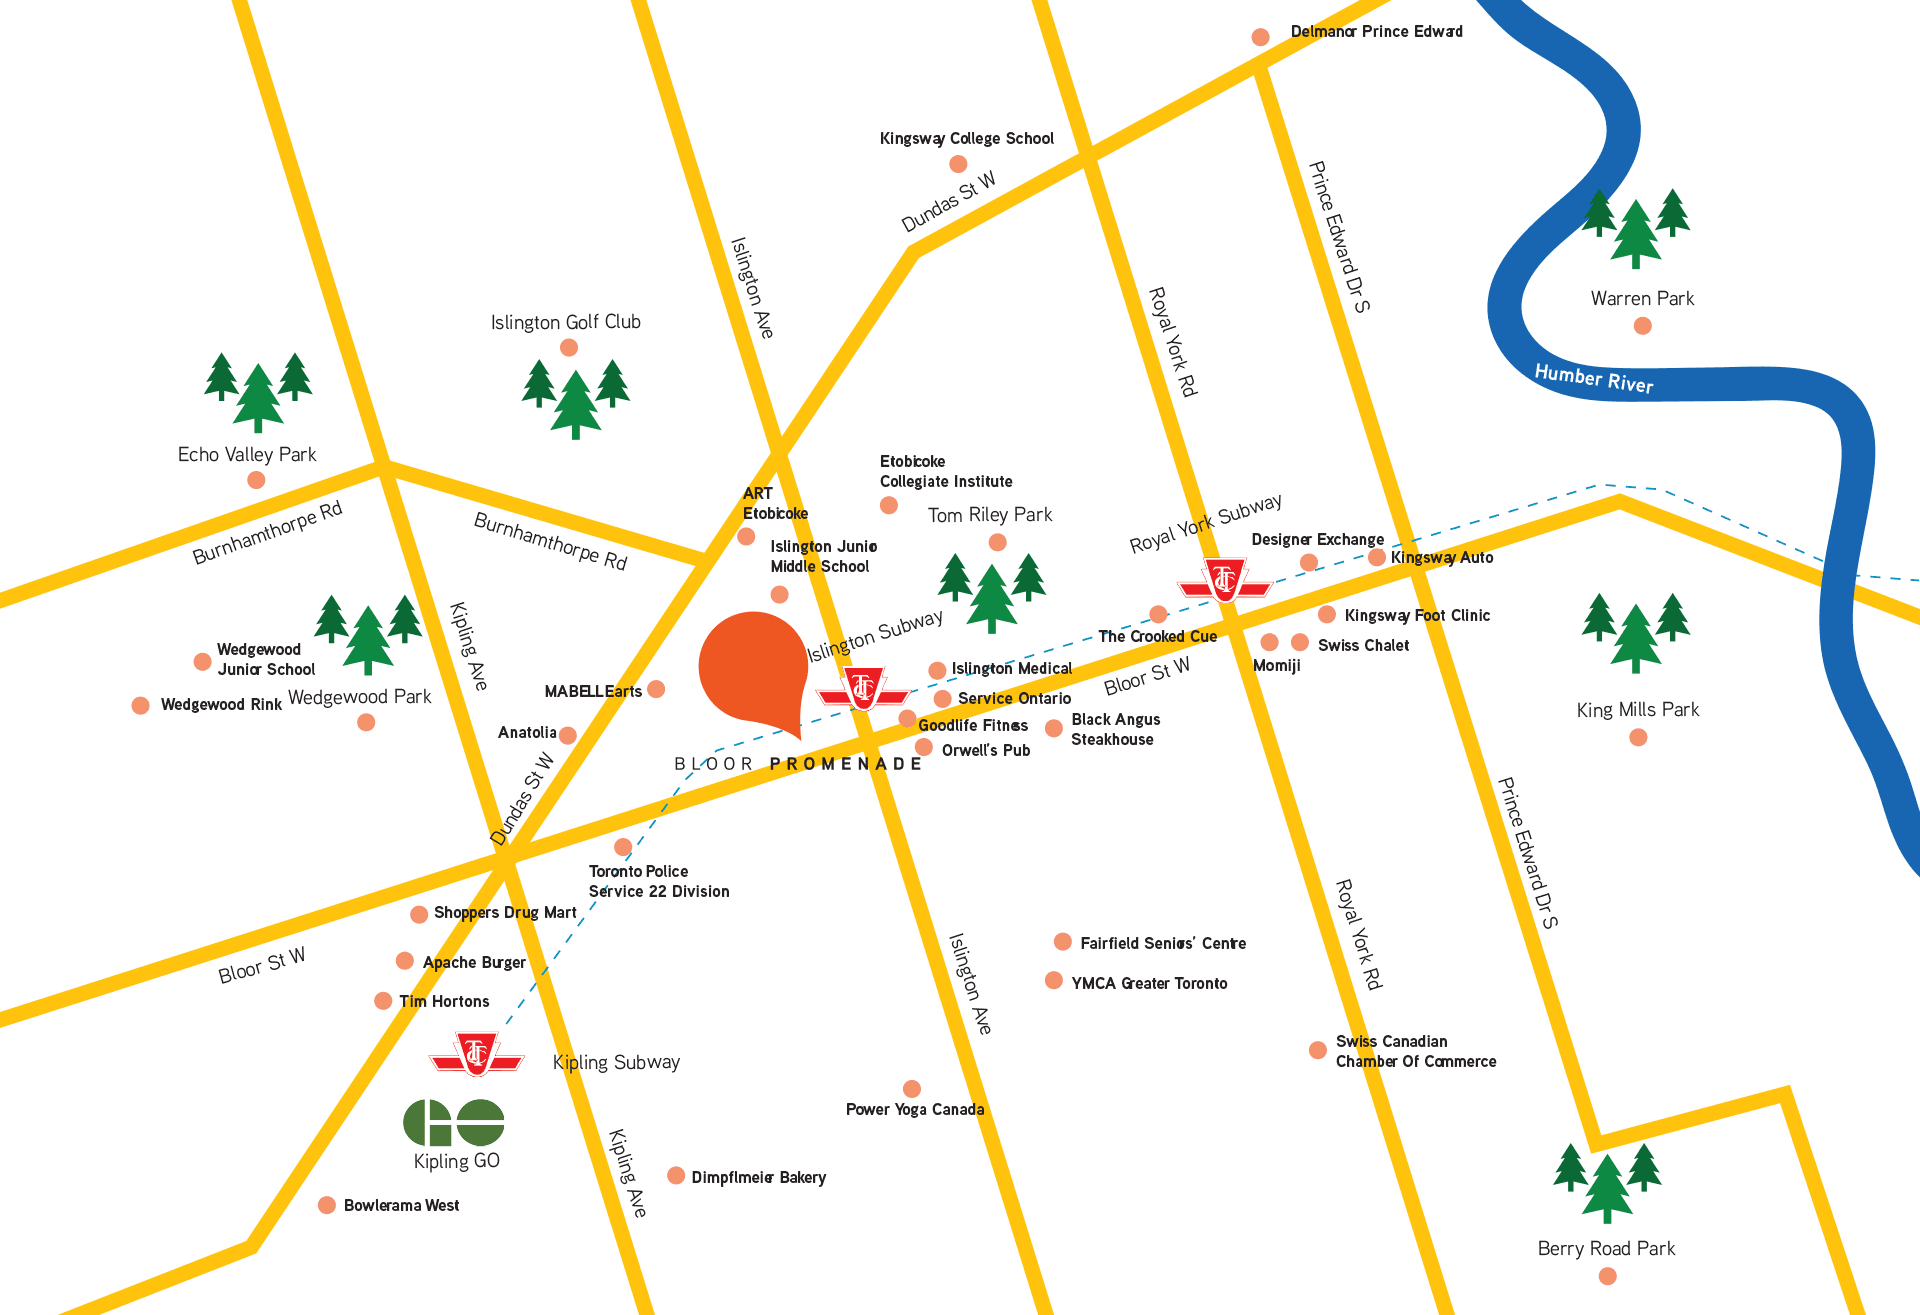 Bloor Promenade Neighbourhood Map